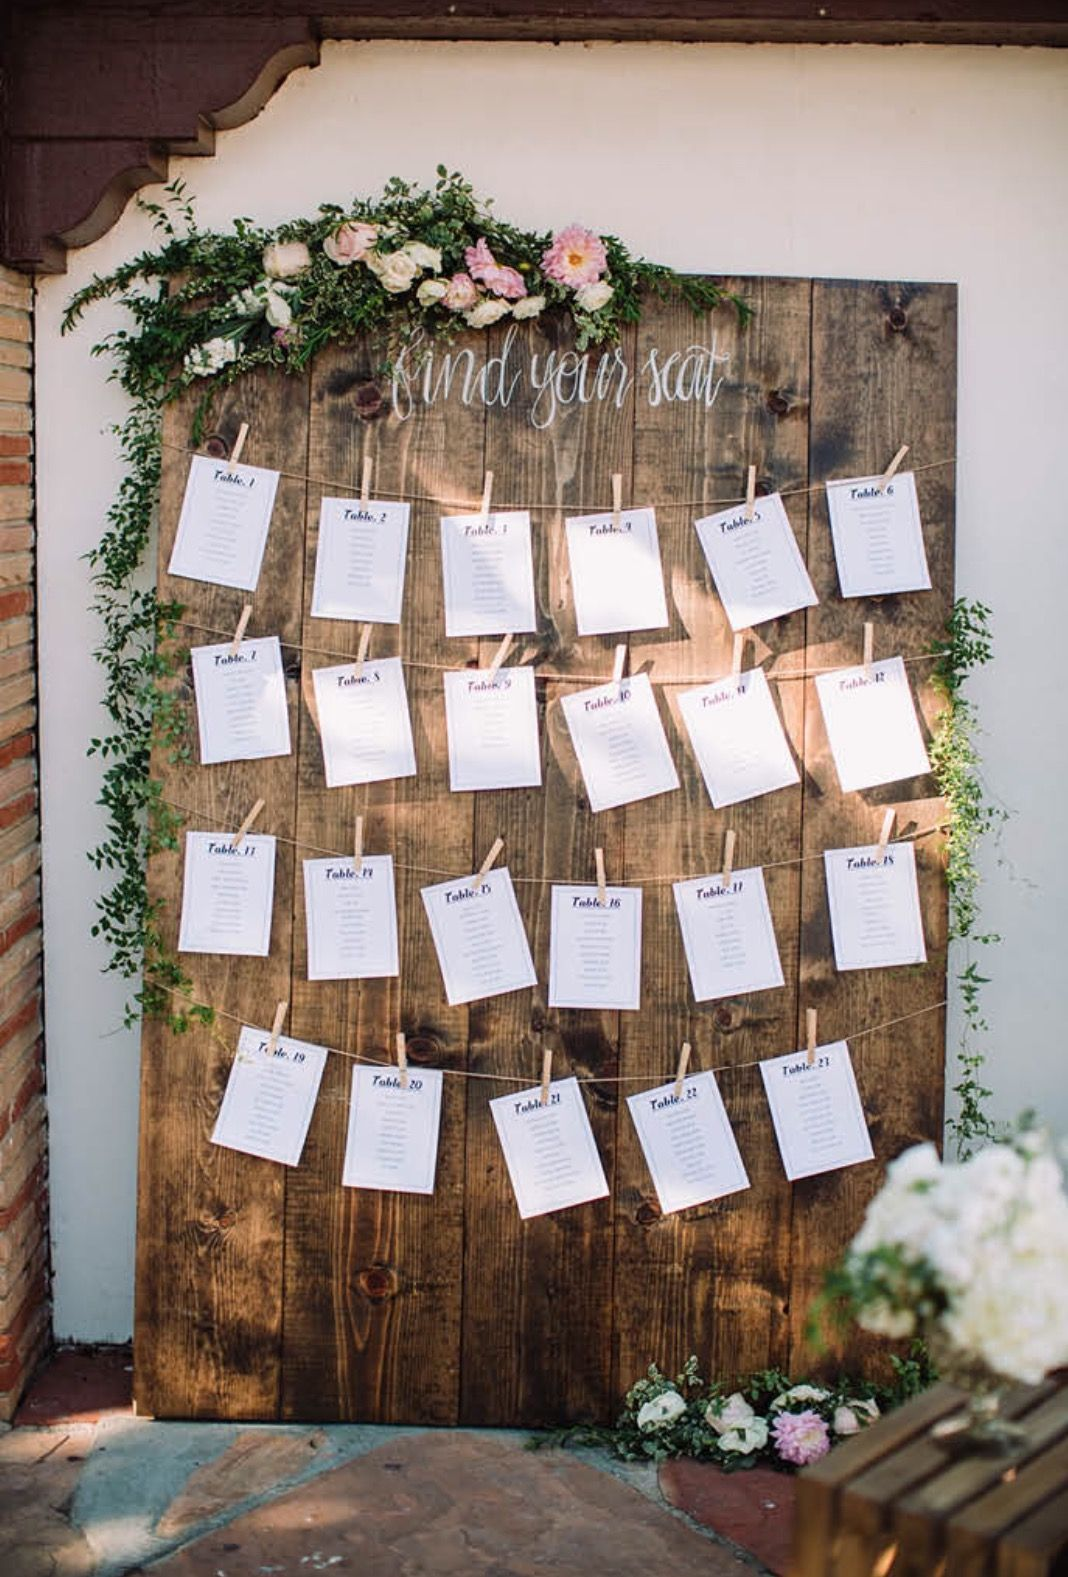 Miscellaneavintagerentals.com Wedding seating chart ideas. Large ...